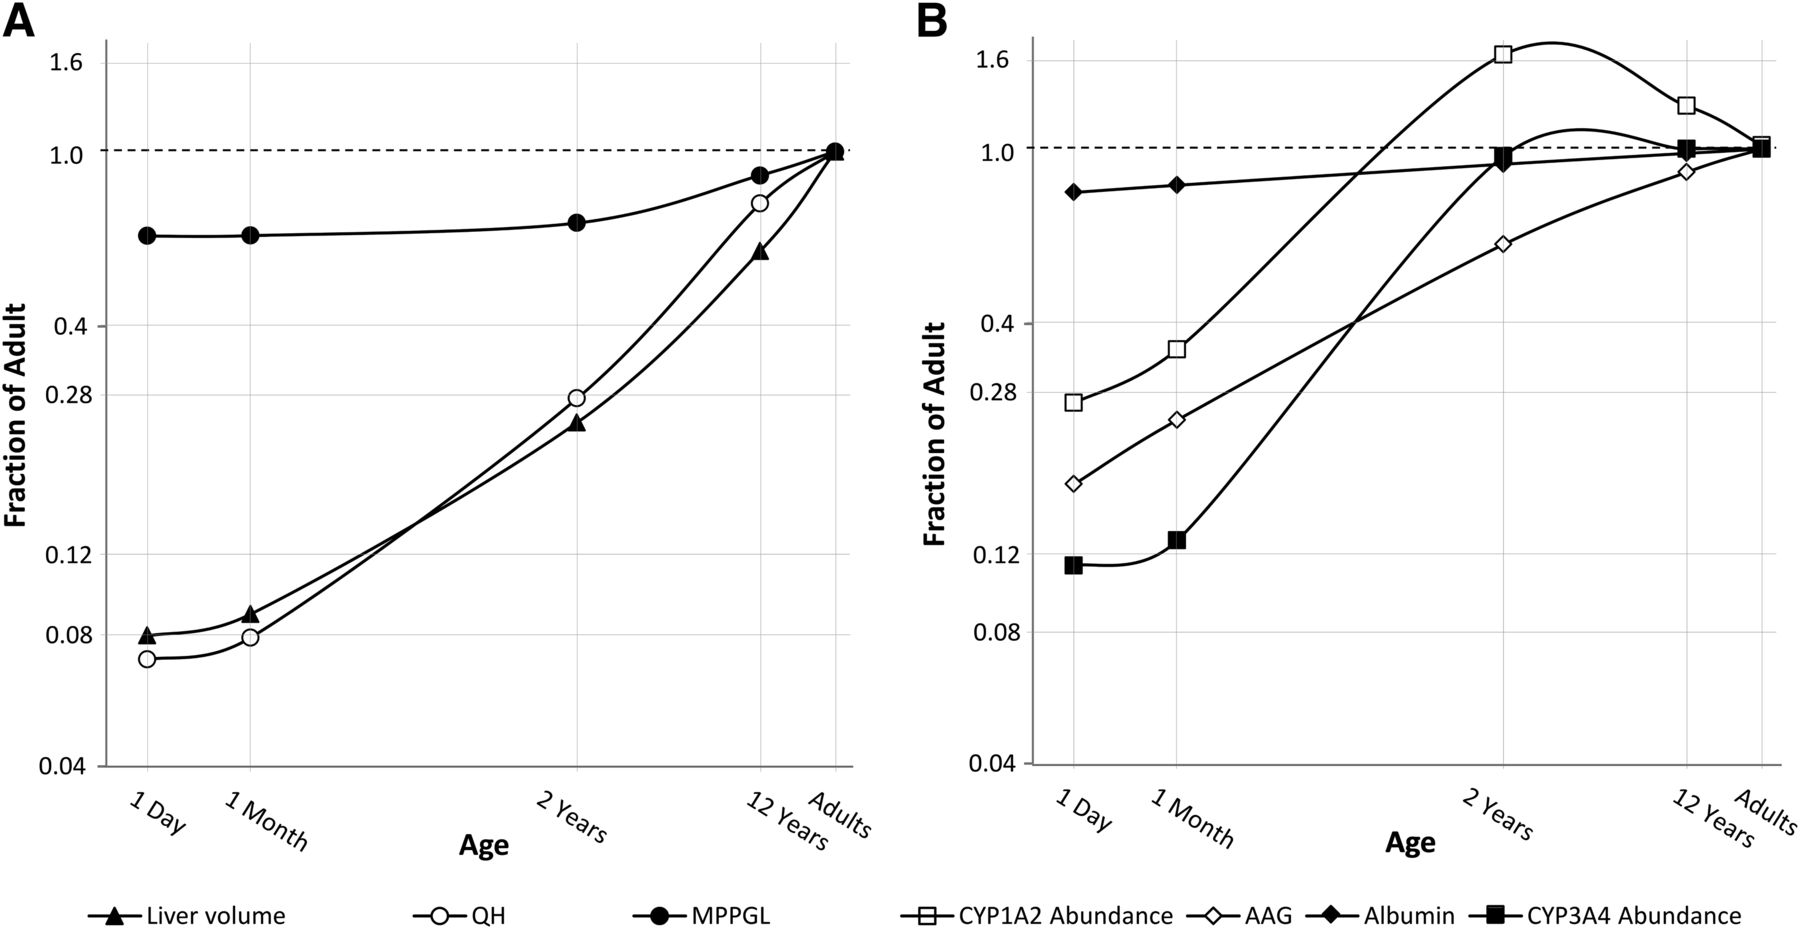 Considering Age Variation When Coining Drugs As High Versus Low